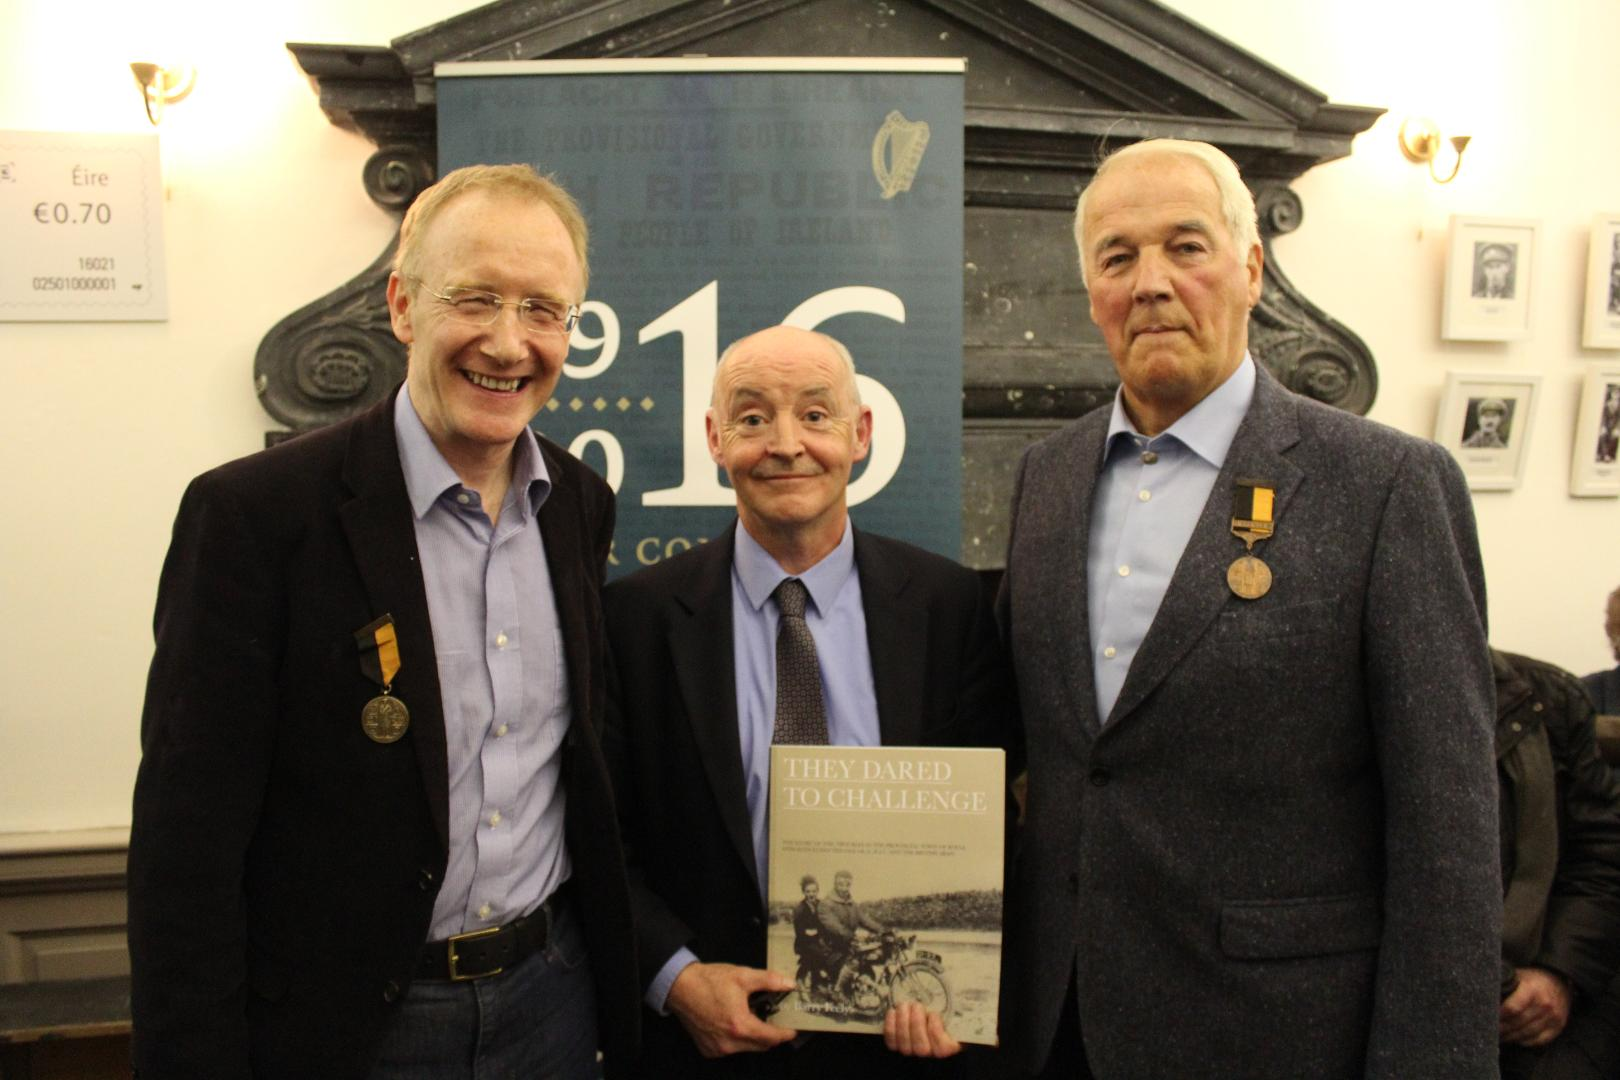 Photo of Book launched in King House